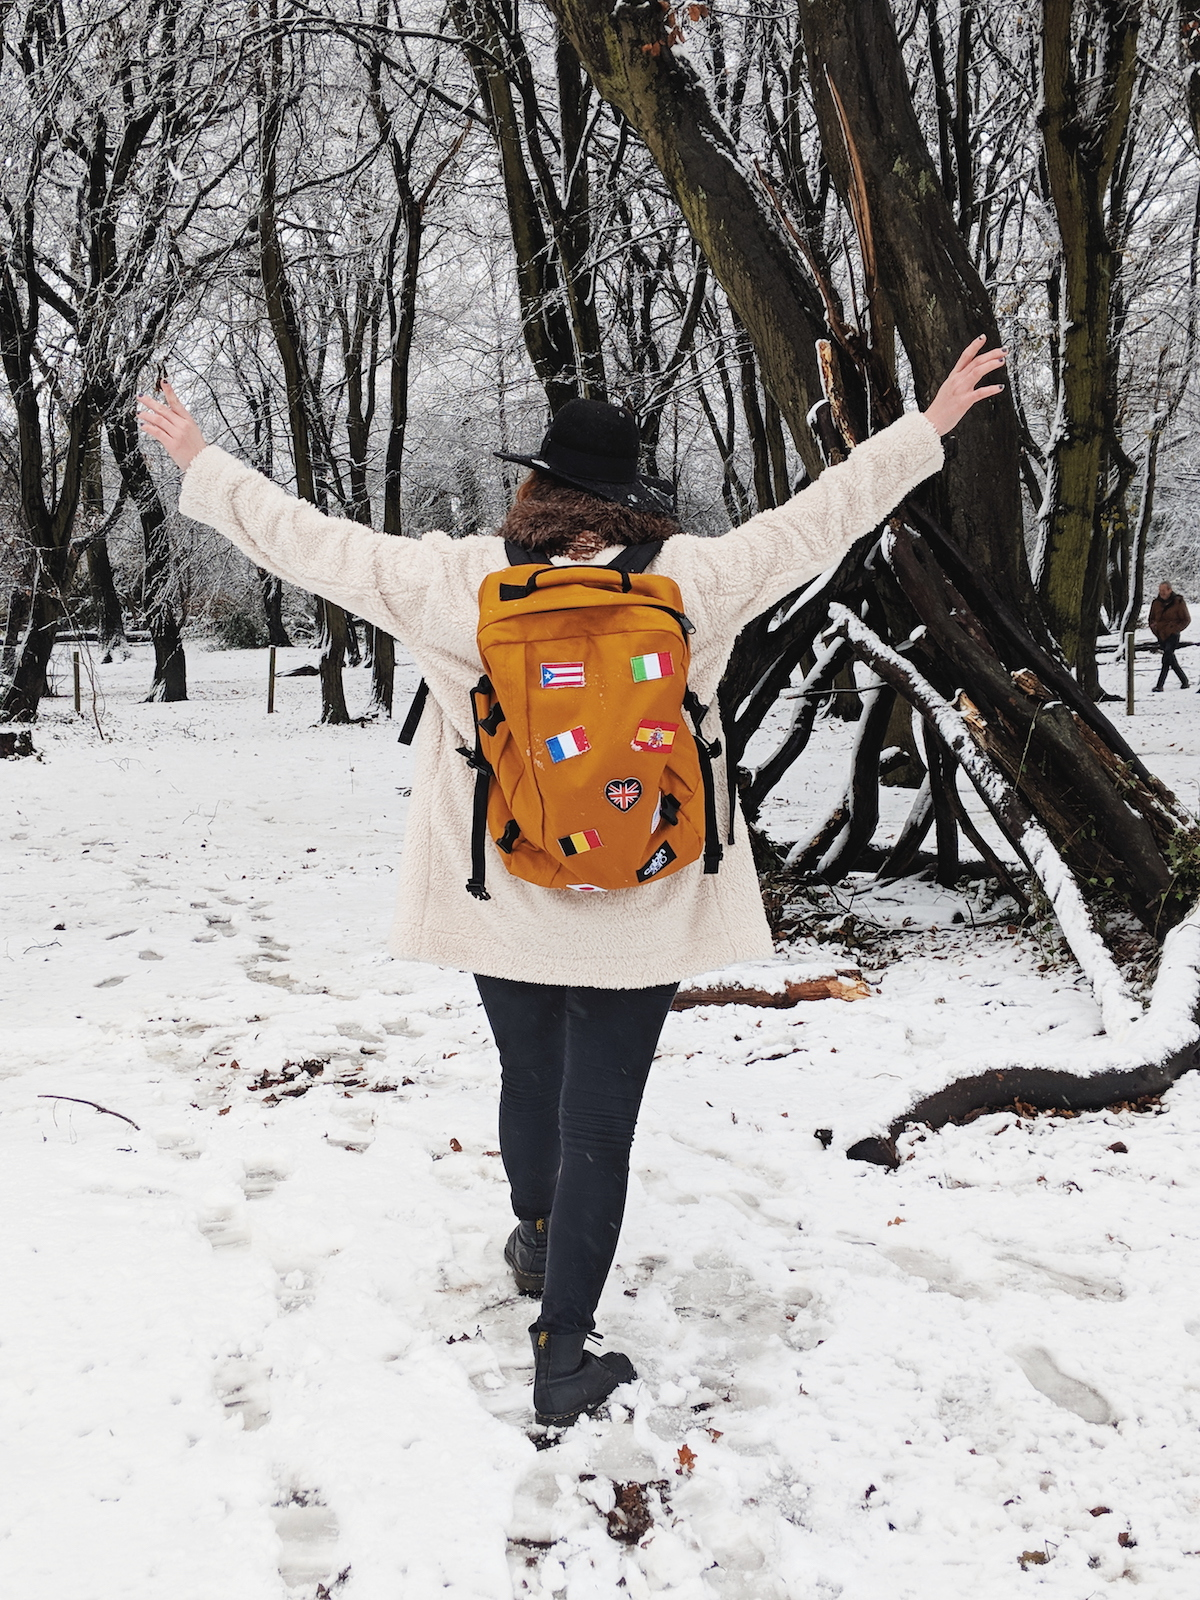 Travel blogger, Leigh Travers, walks amongst a snowy forest scene with her hands in the air whilst wearing a Cabin Zero rucksack